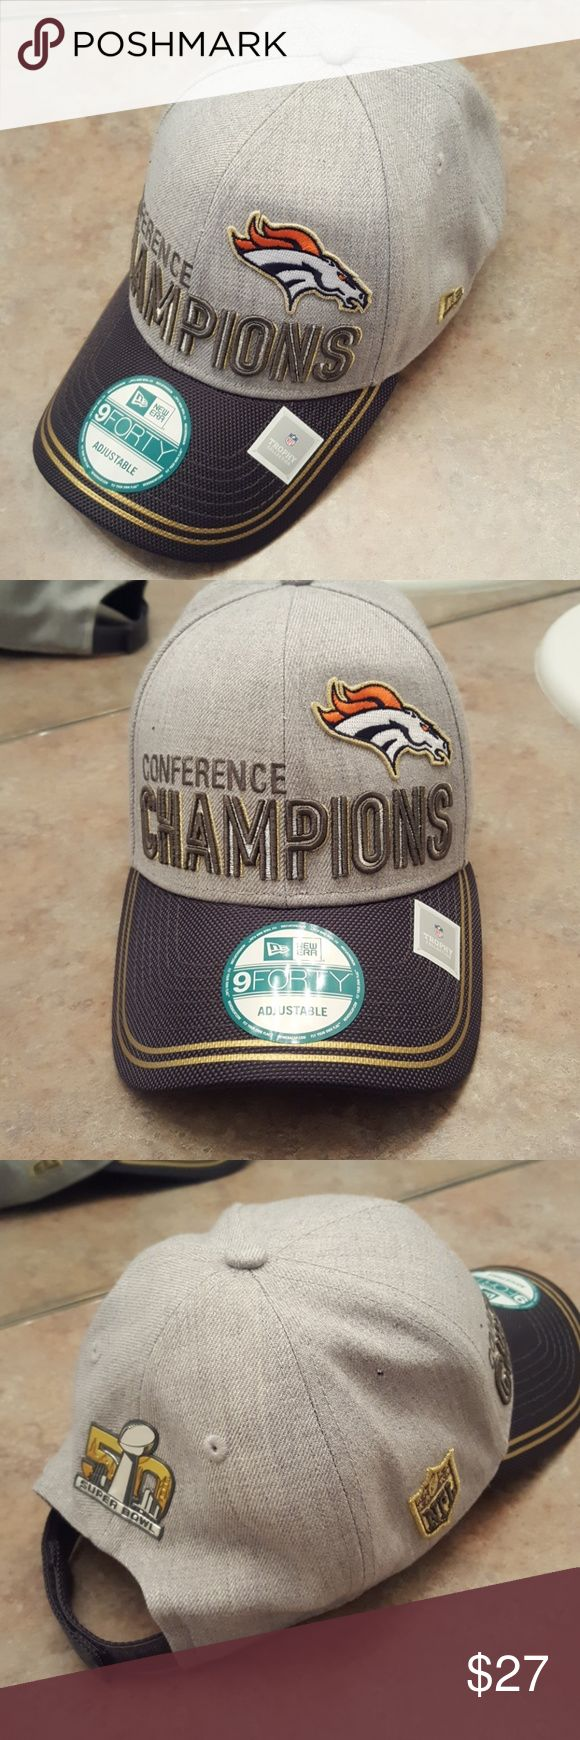 Superbowl 50 Broncos conference Champs new era hat Hello, this is a new with tags, never worn Denver broncos superbowl 50 conference champions hat. It us in mint condition and is a collectors item. New Era Accessories Hats